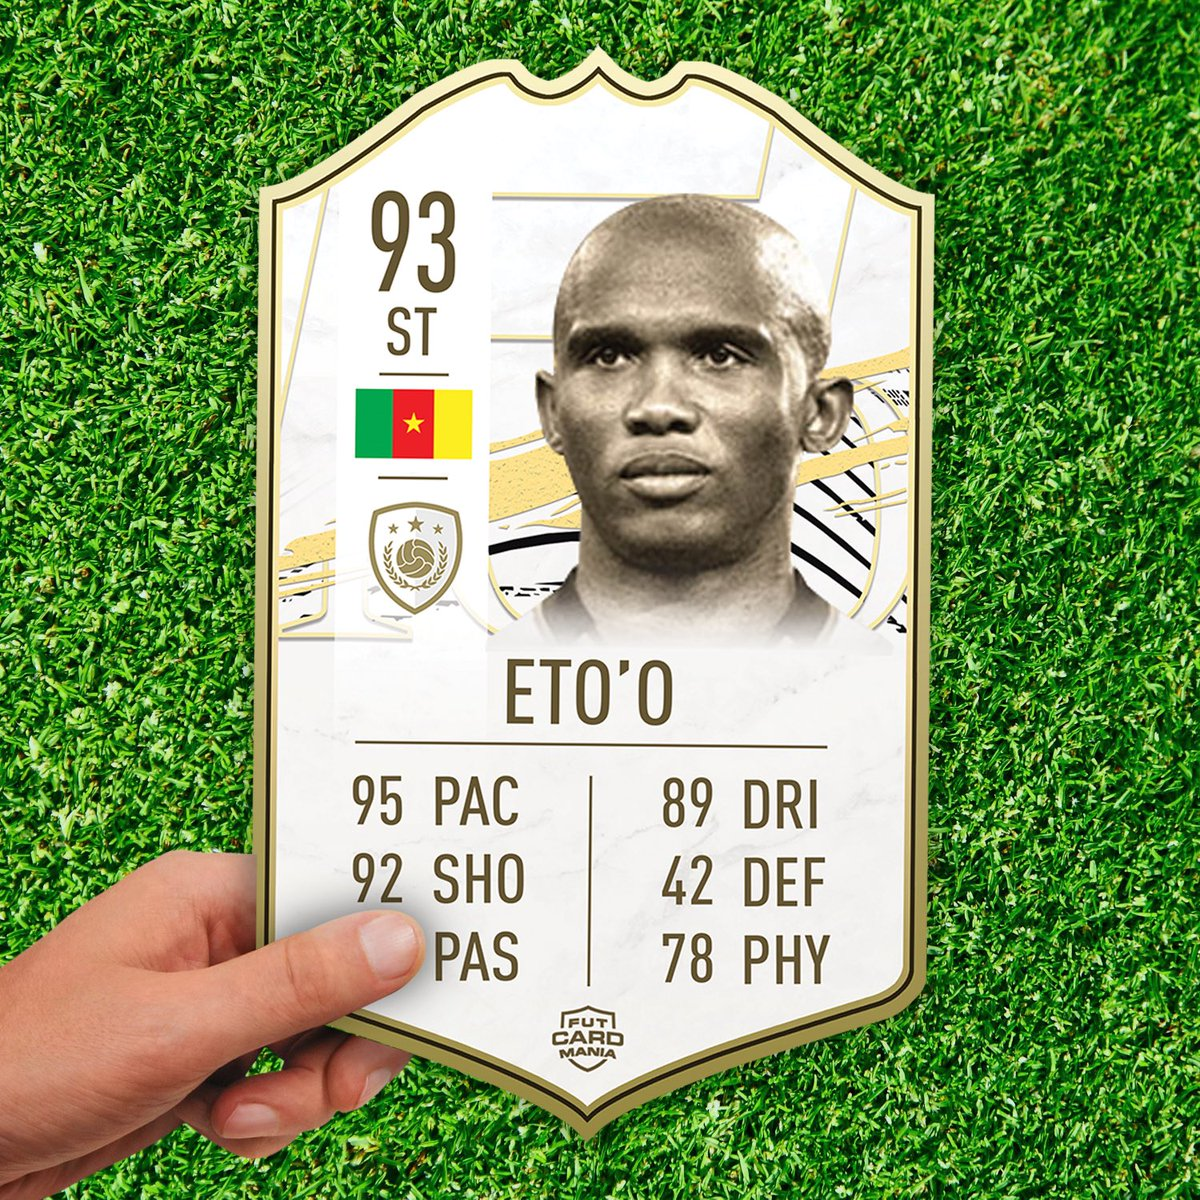 Brand new 2021 Footballs Greatest cards are now available🔥 Get your own custom card today for as little as £14.99👀 https://t.co/VnMyG7itMj